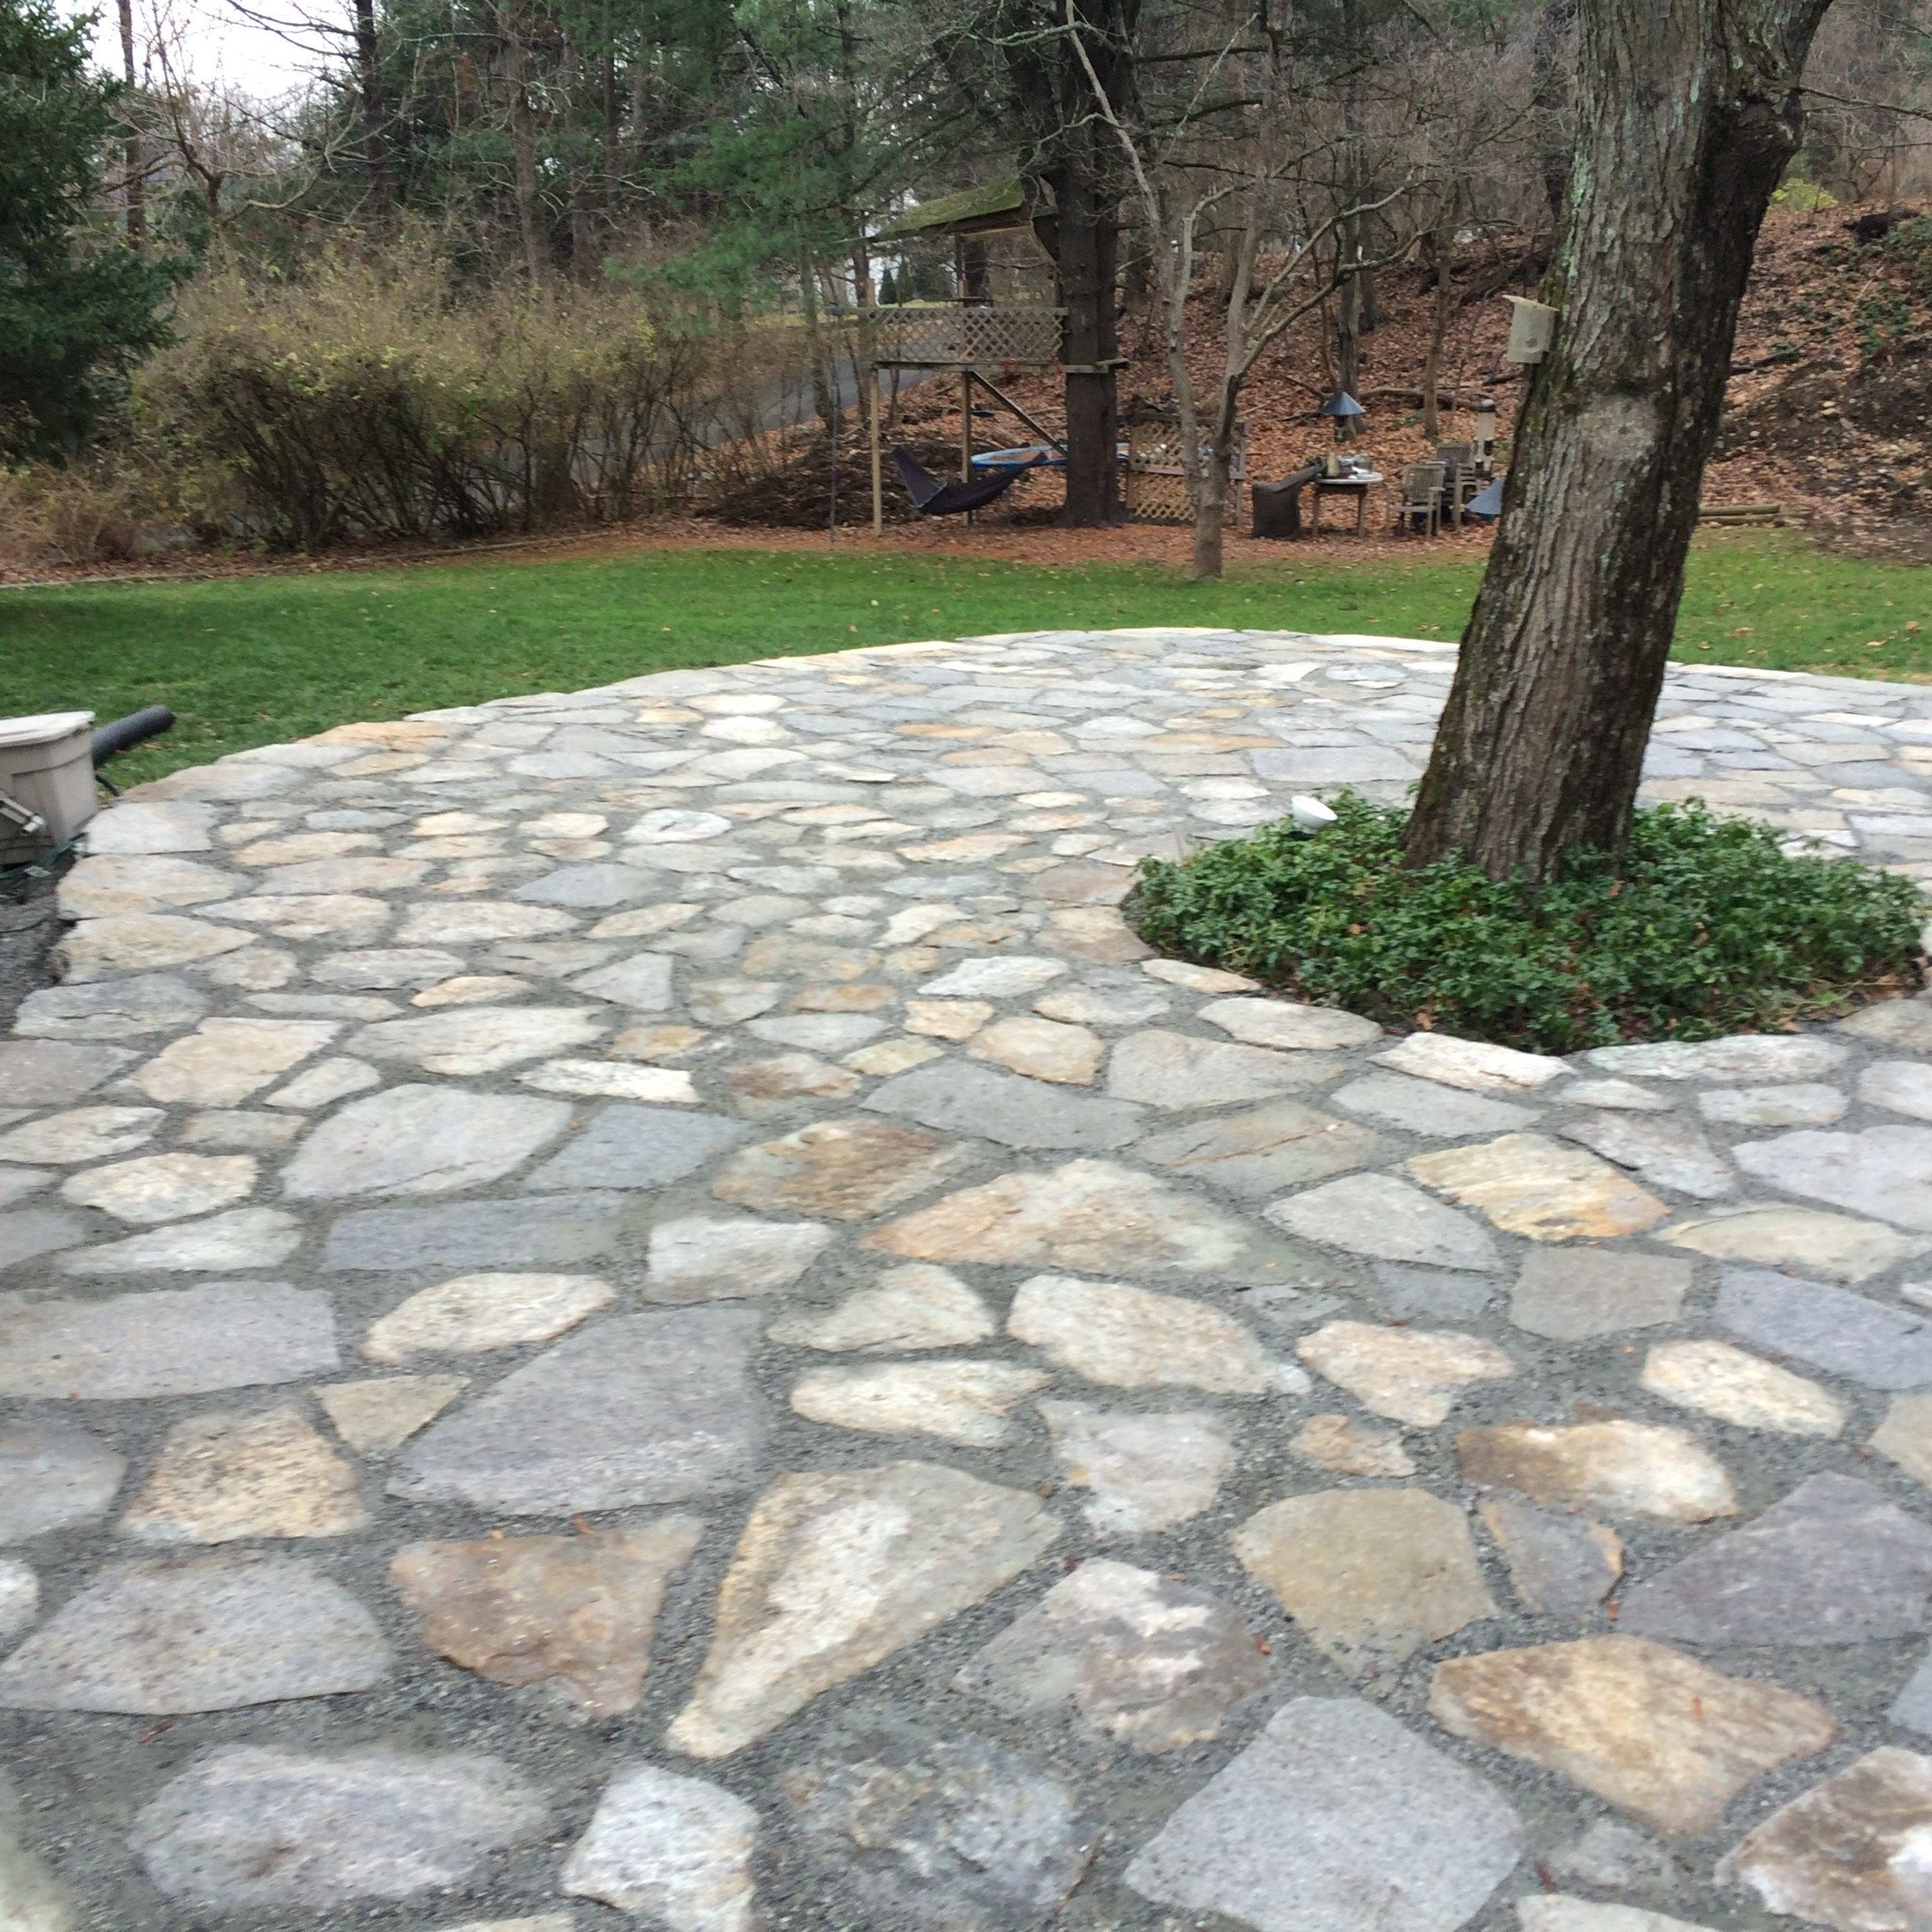 Re-pointed Patio Space in Wilton - Picture 3786